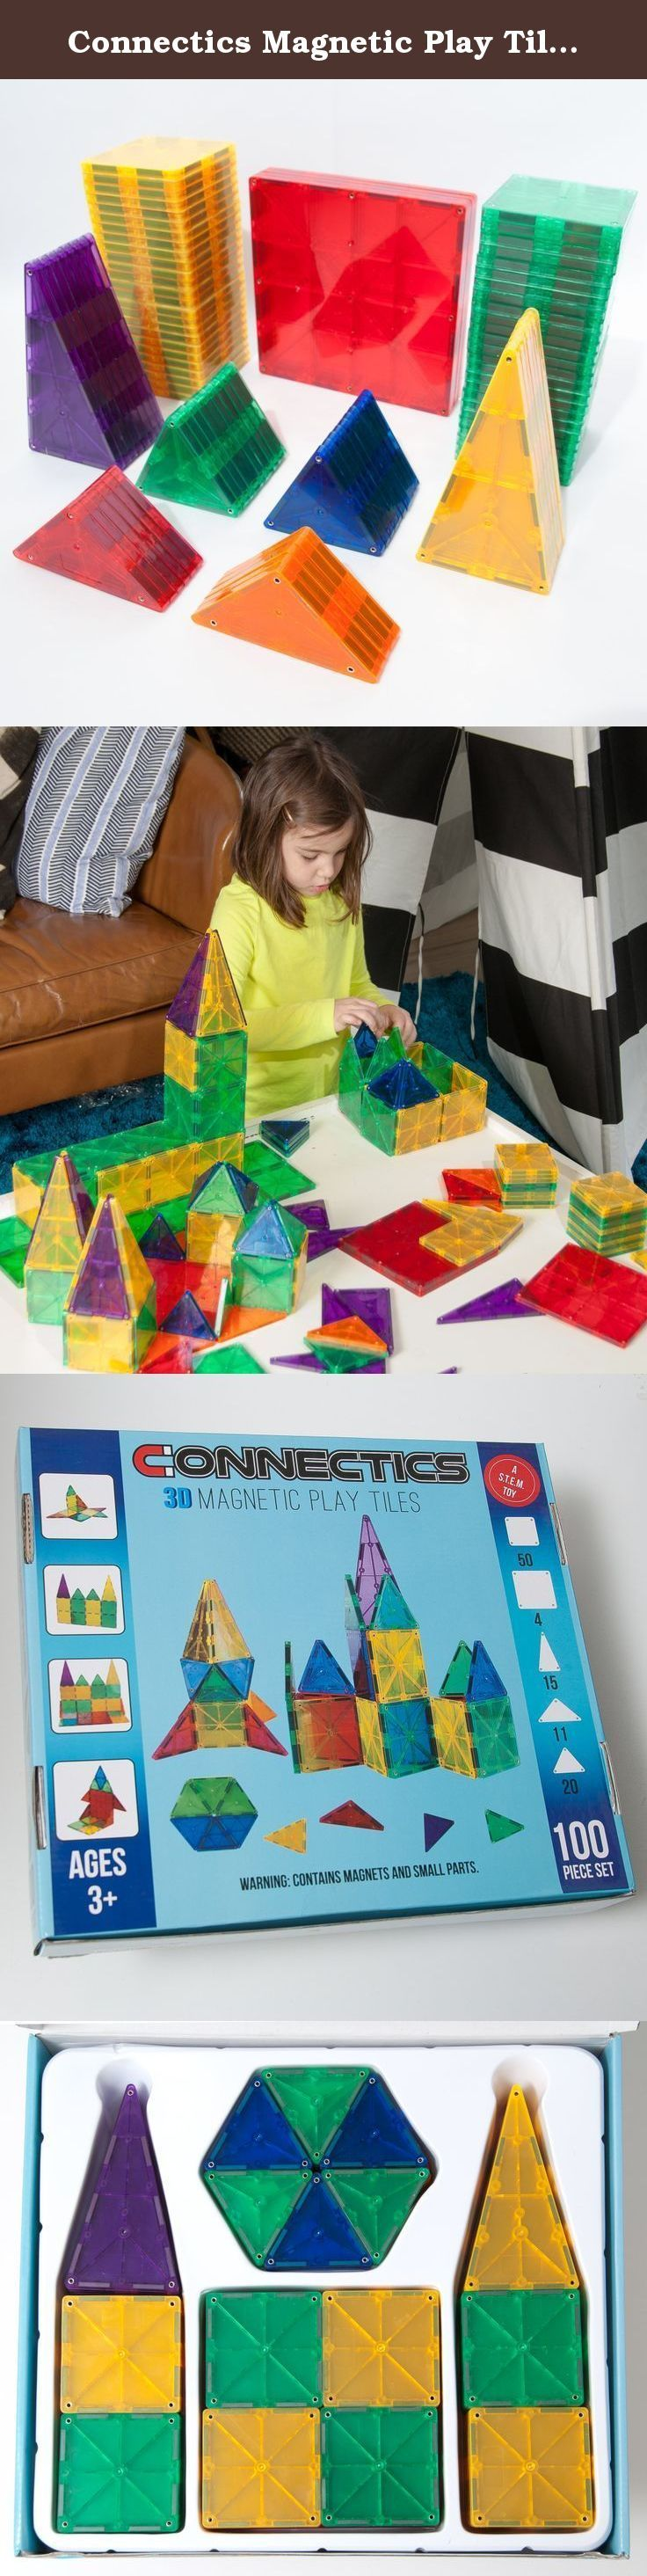 Connectics Magnetic Play Tiles 3-D Tiles 100 Piece Set Educational, Inspirational, Recreational. Connectics Magnetic Play Tiles engage children in creative play and help them learn and practice a variety of skills and concepts. This 100 piece set includes 50 small squares, 4 large squares, 15 large isosceles triangles, 11 small isosceles triangles, and 20 equilateral triangles. Connectics Magnetic Play Tiles help children develop patterning, shape recognition, building and motor skills…